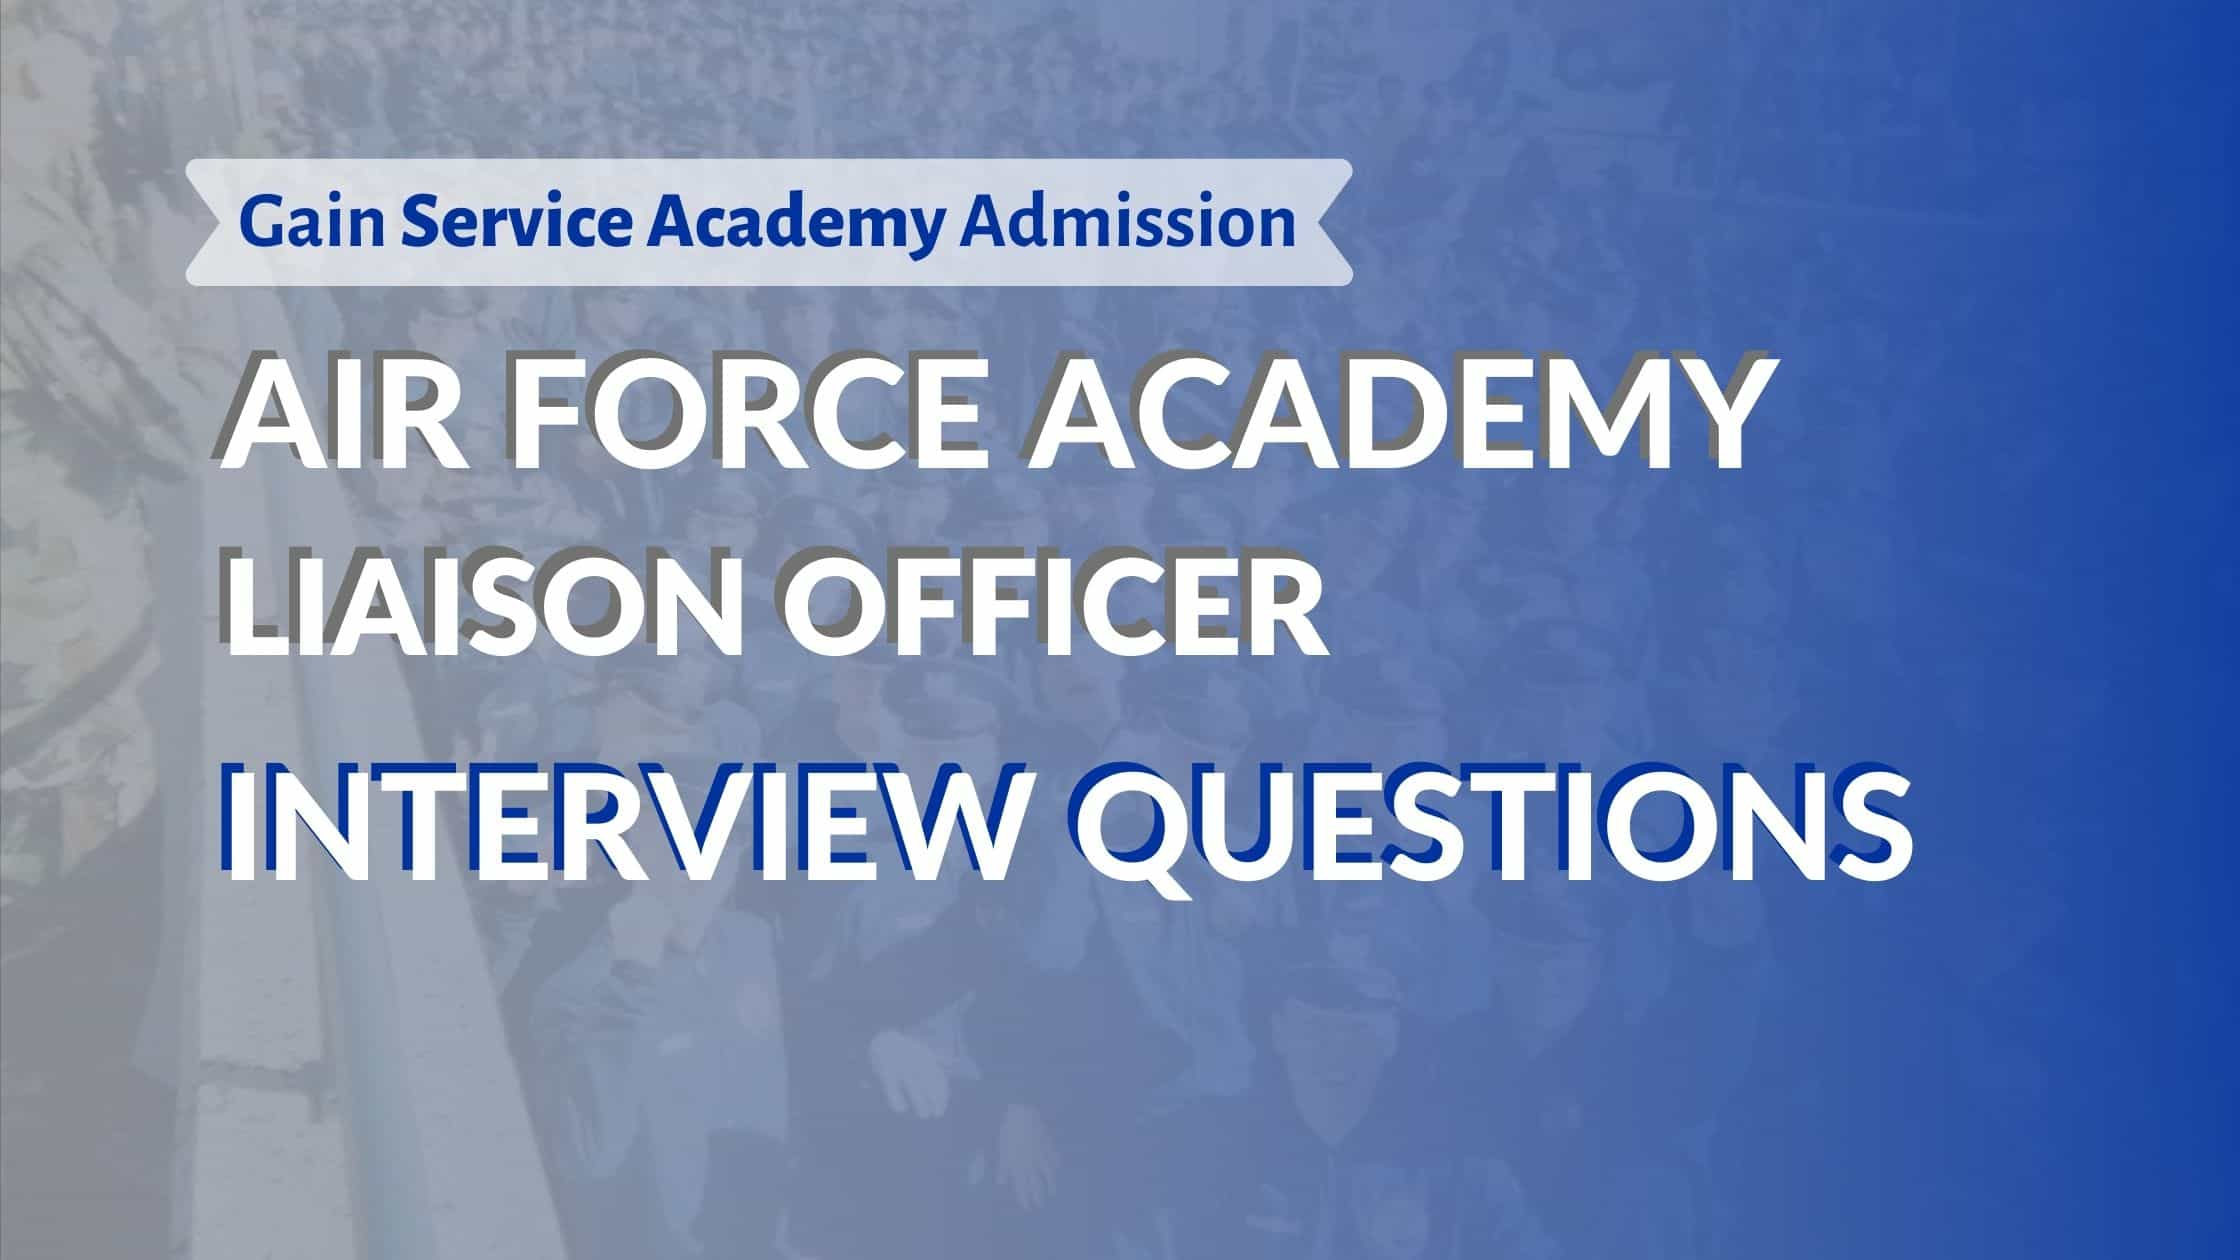 Air Force Academy Liaison Officer Interview Questions Blog Post Graphic